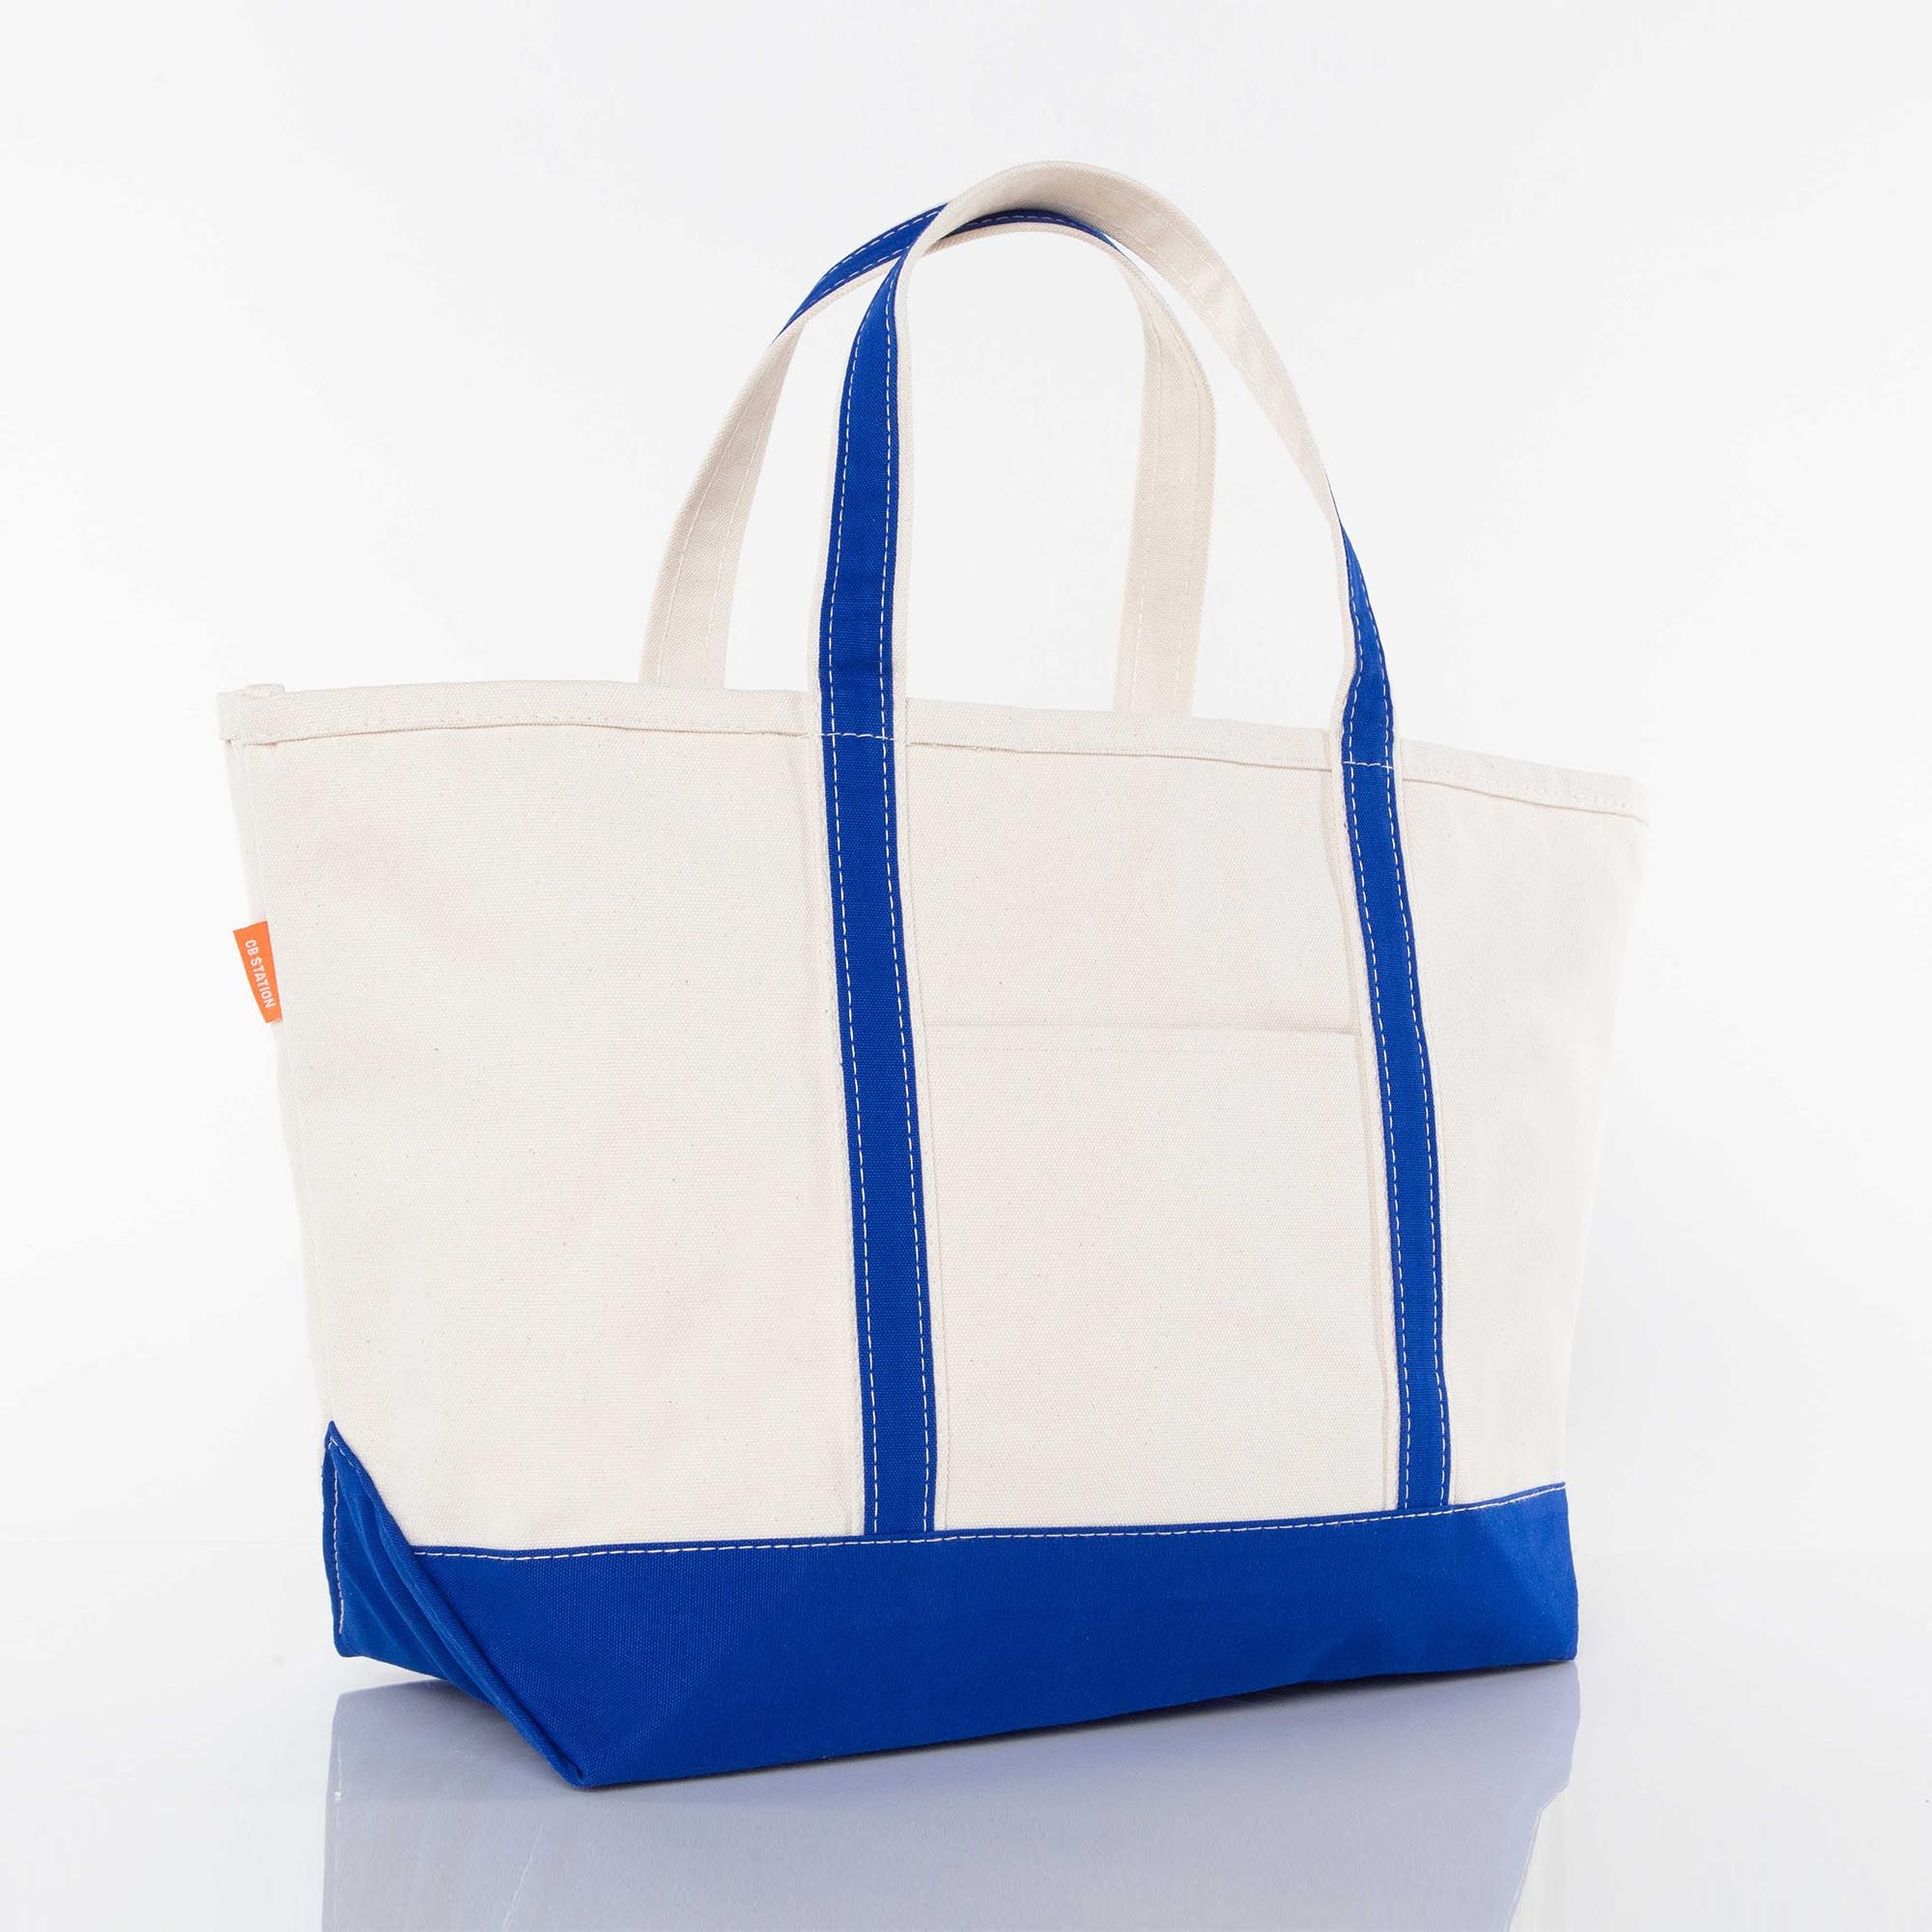 LARGE CANVAS BOAT TOTE - ROYAL BLUE